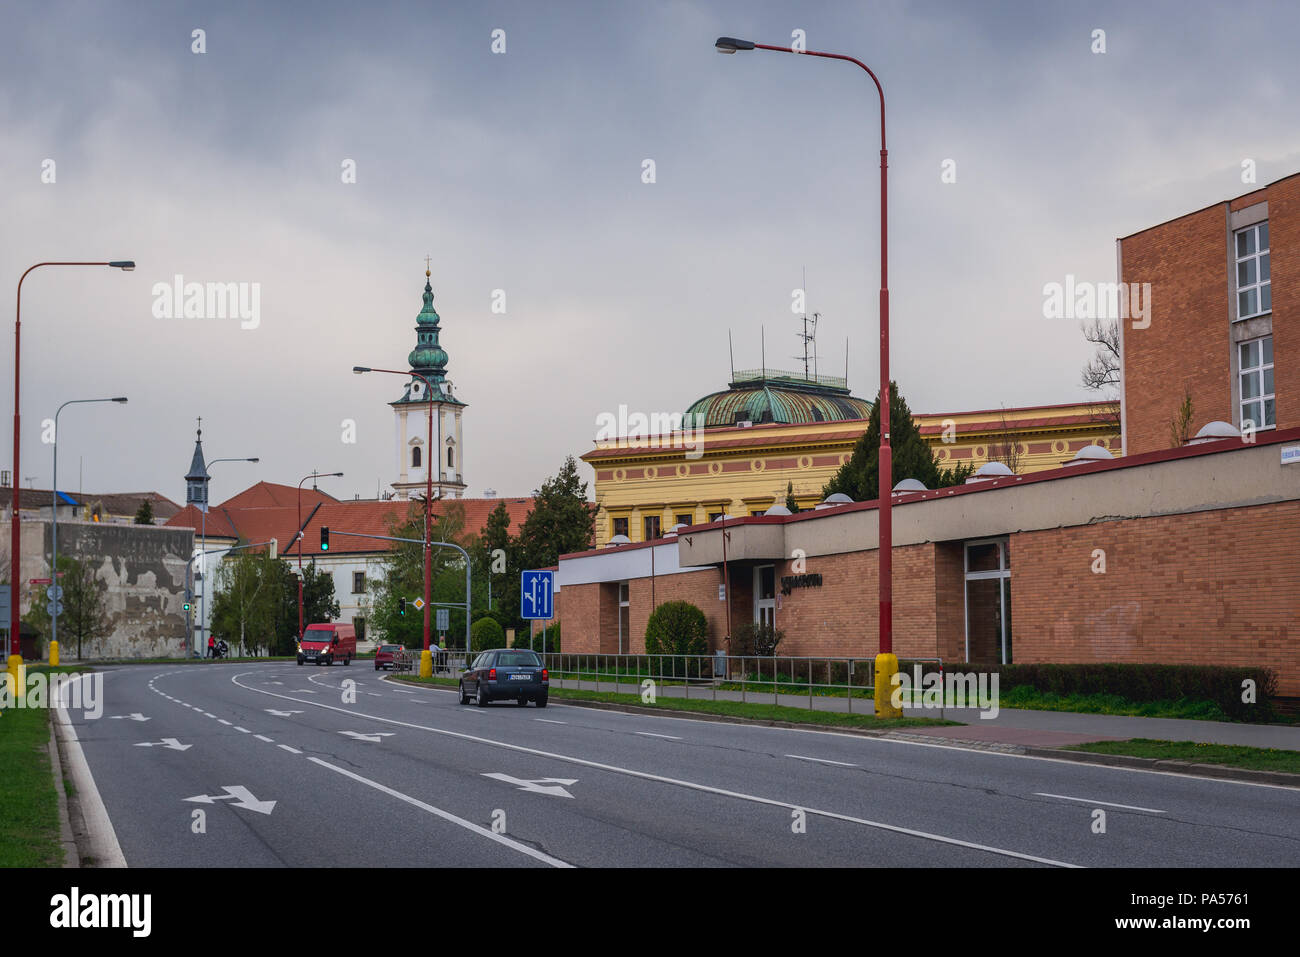 Church of the Annunciation of the Virgin Mary nad historical school building in Uherske Hradiste city in Zlin Region, Moravia in Czech Republic - Stock Image